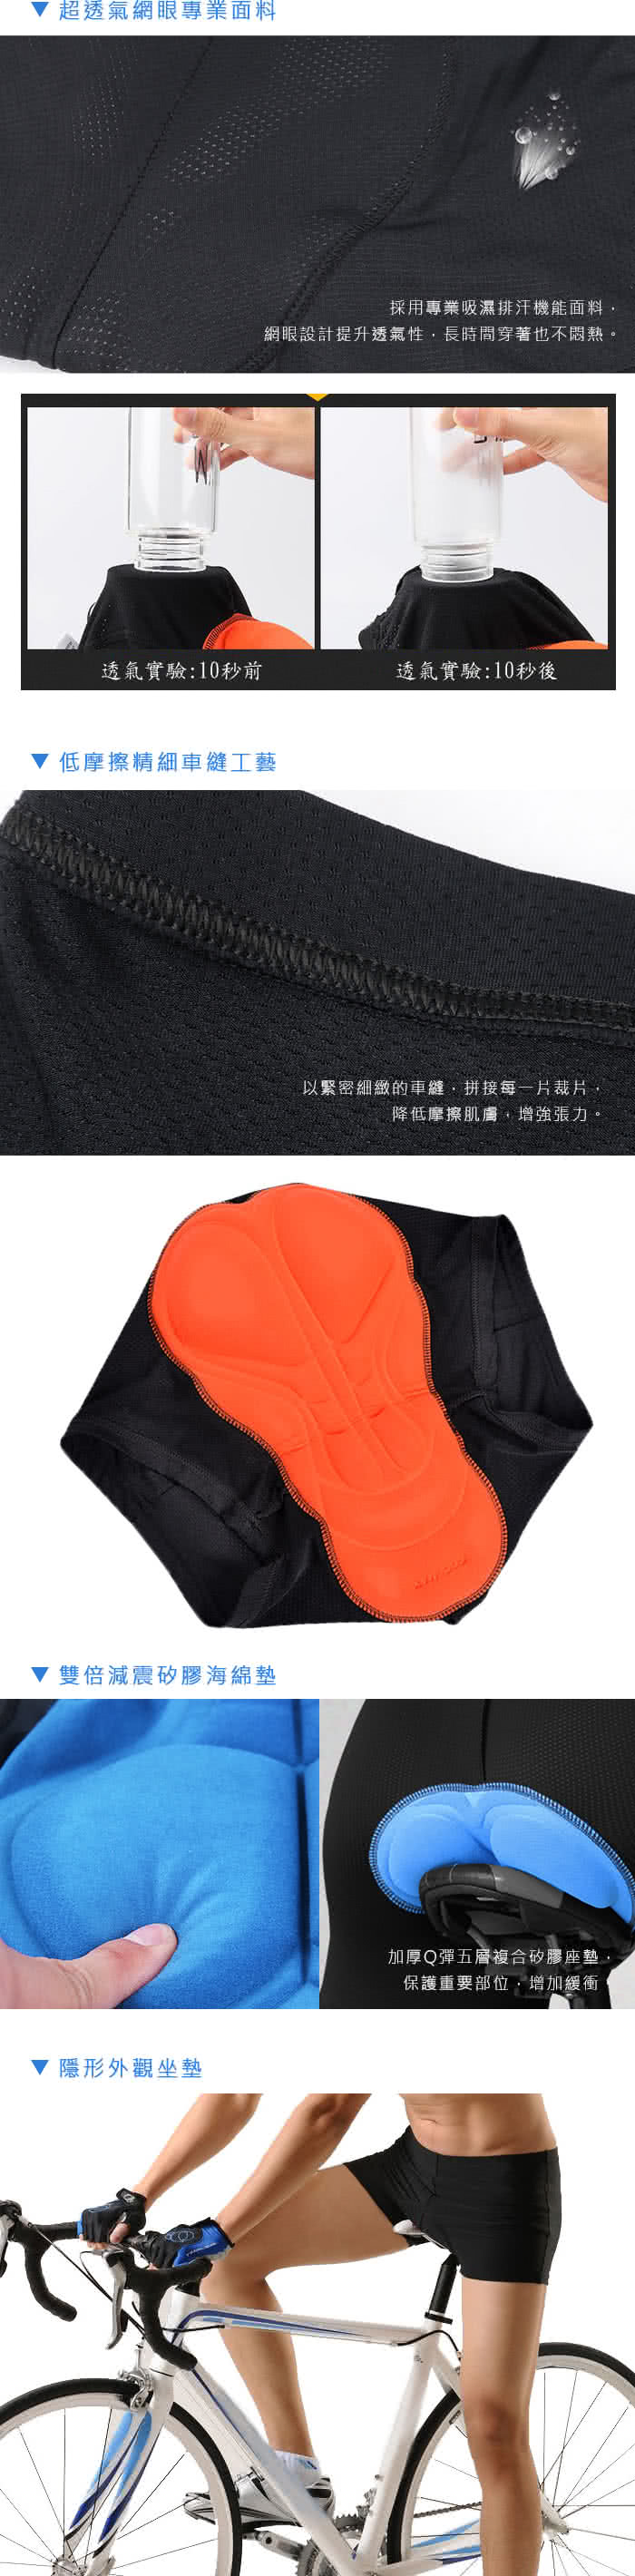 cycling-Underwear_long_02.jpg?t=1490333835236